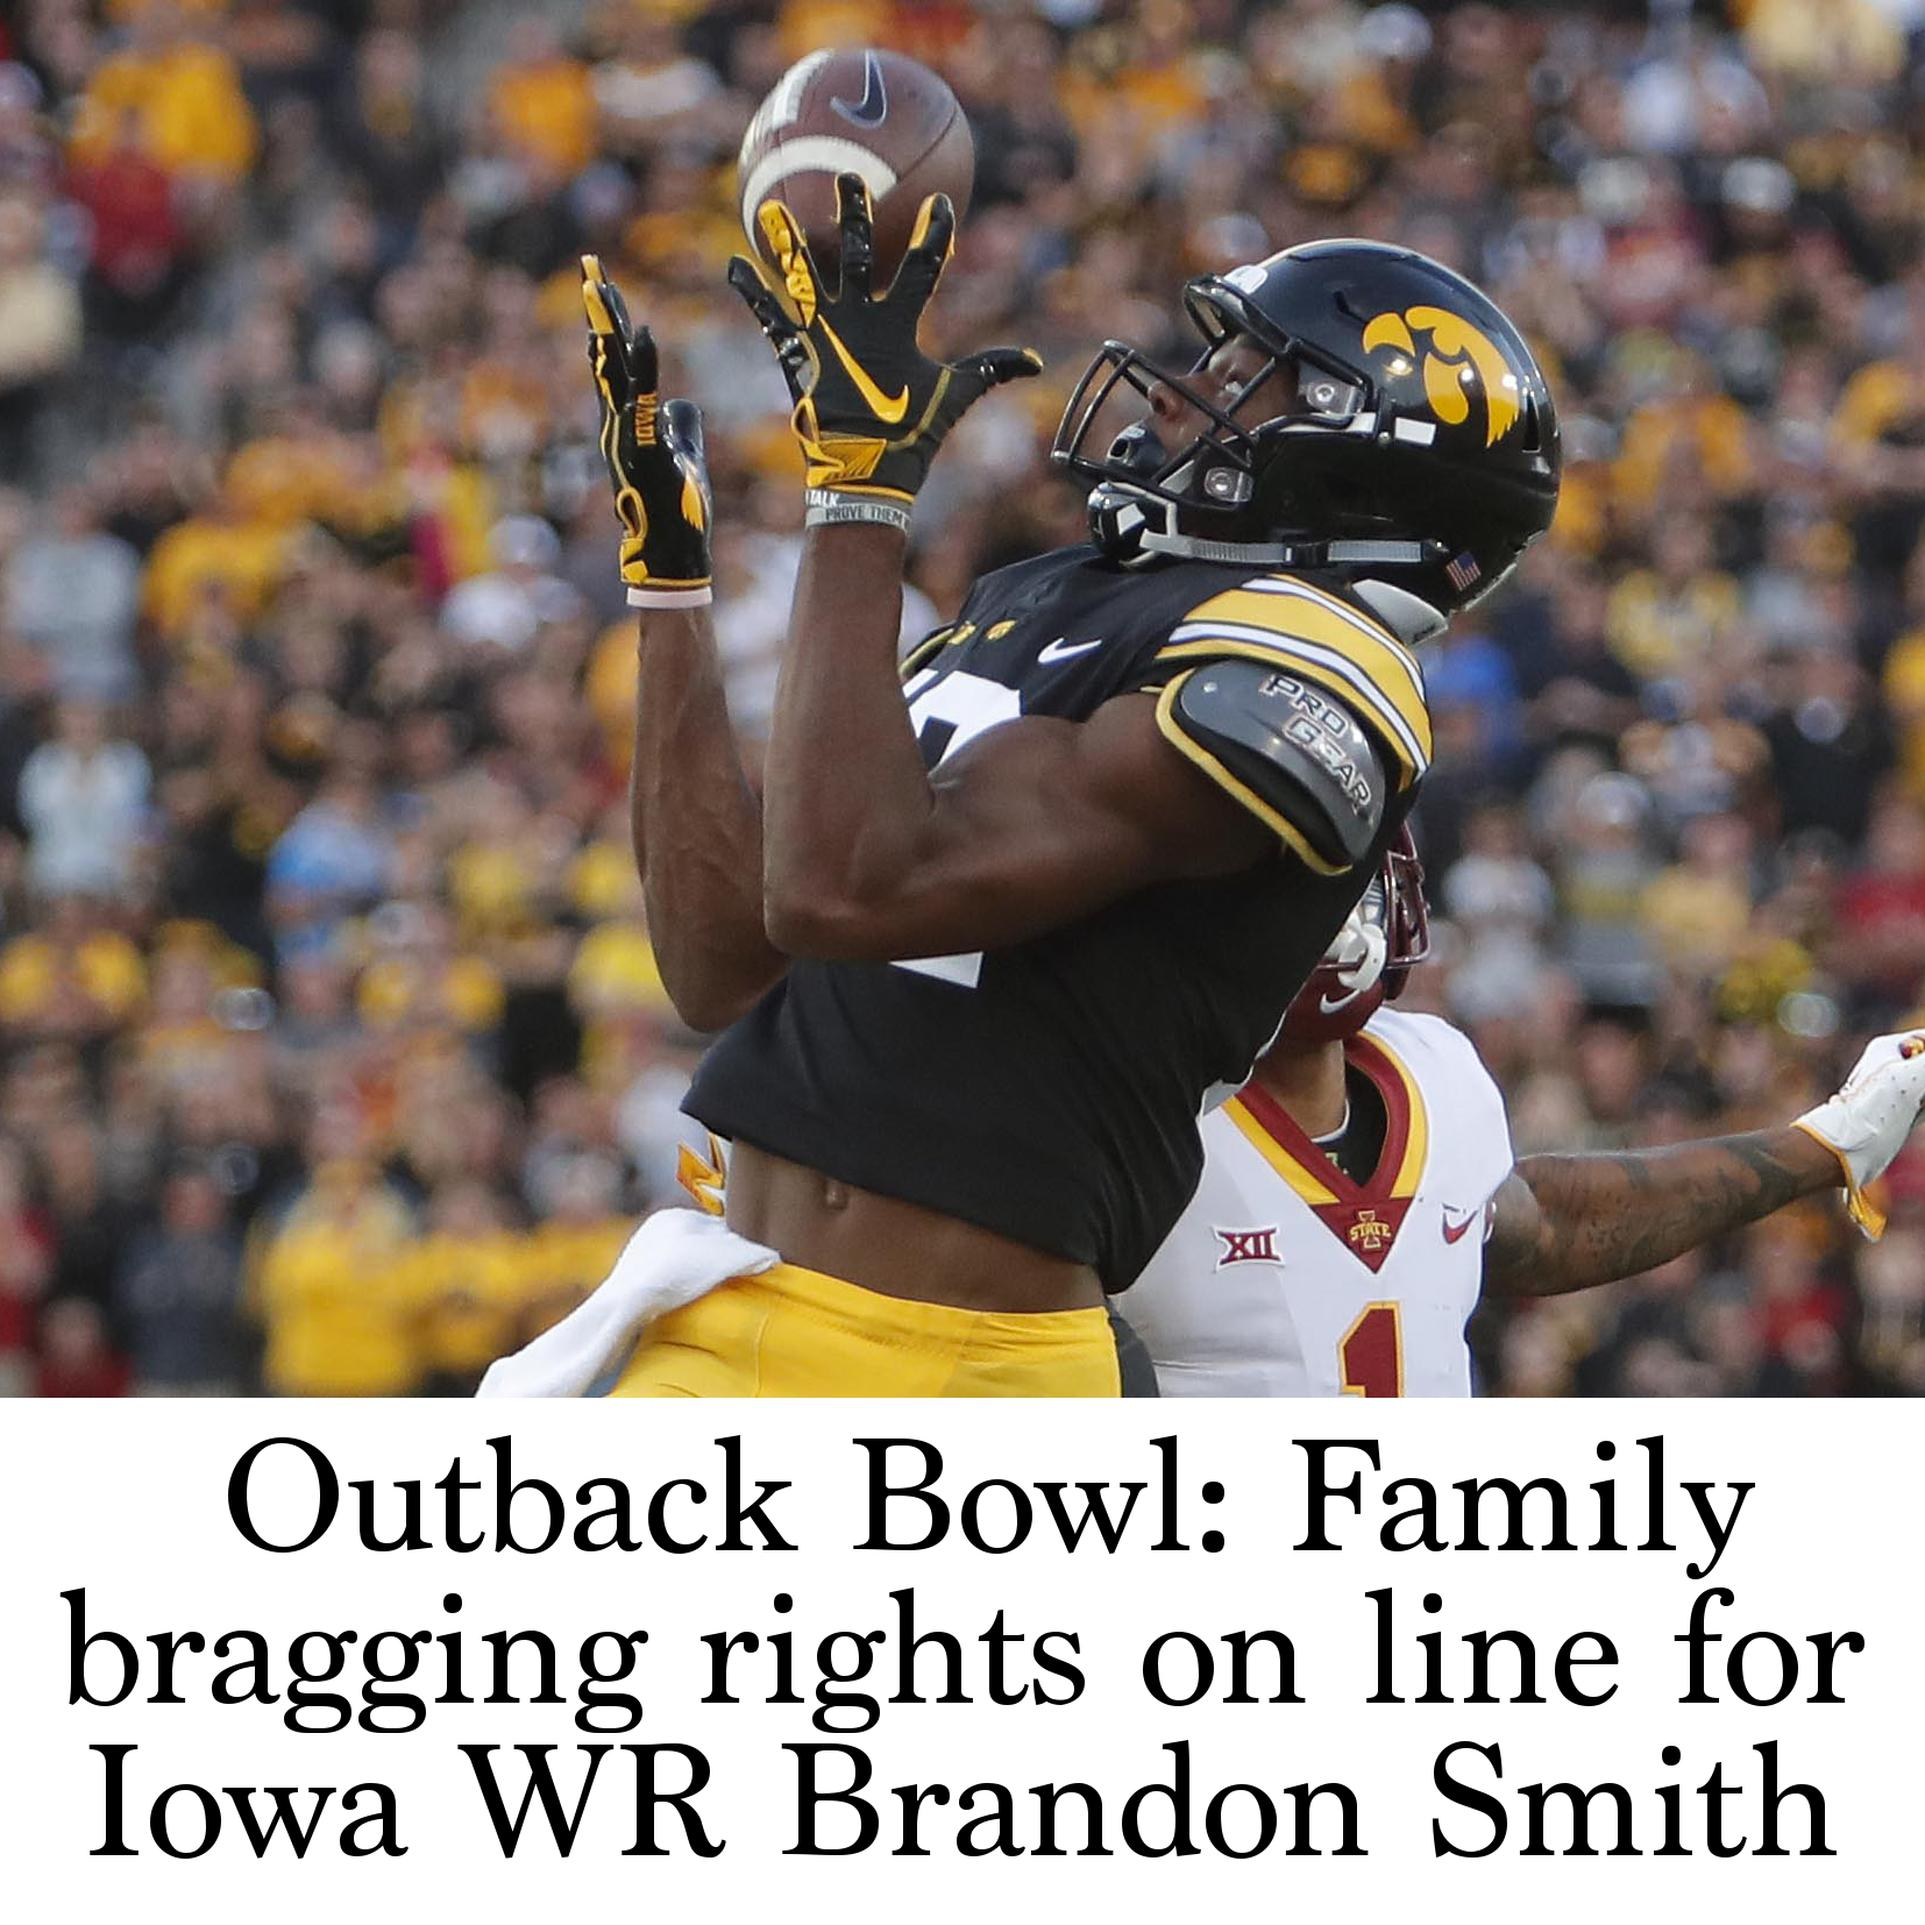 outback bowl family bragging rights on line for iowa wr brandon smith iowa wr brandon smith